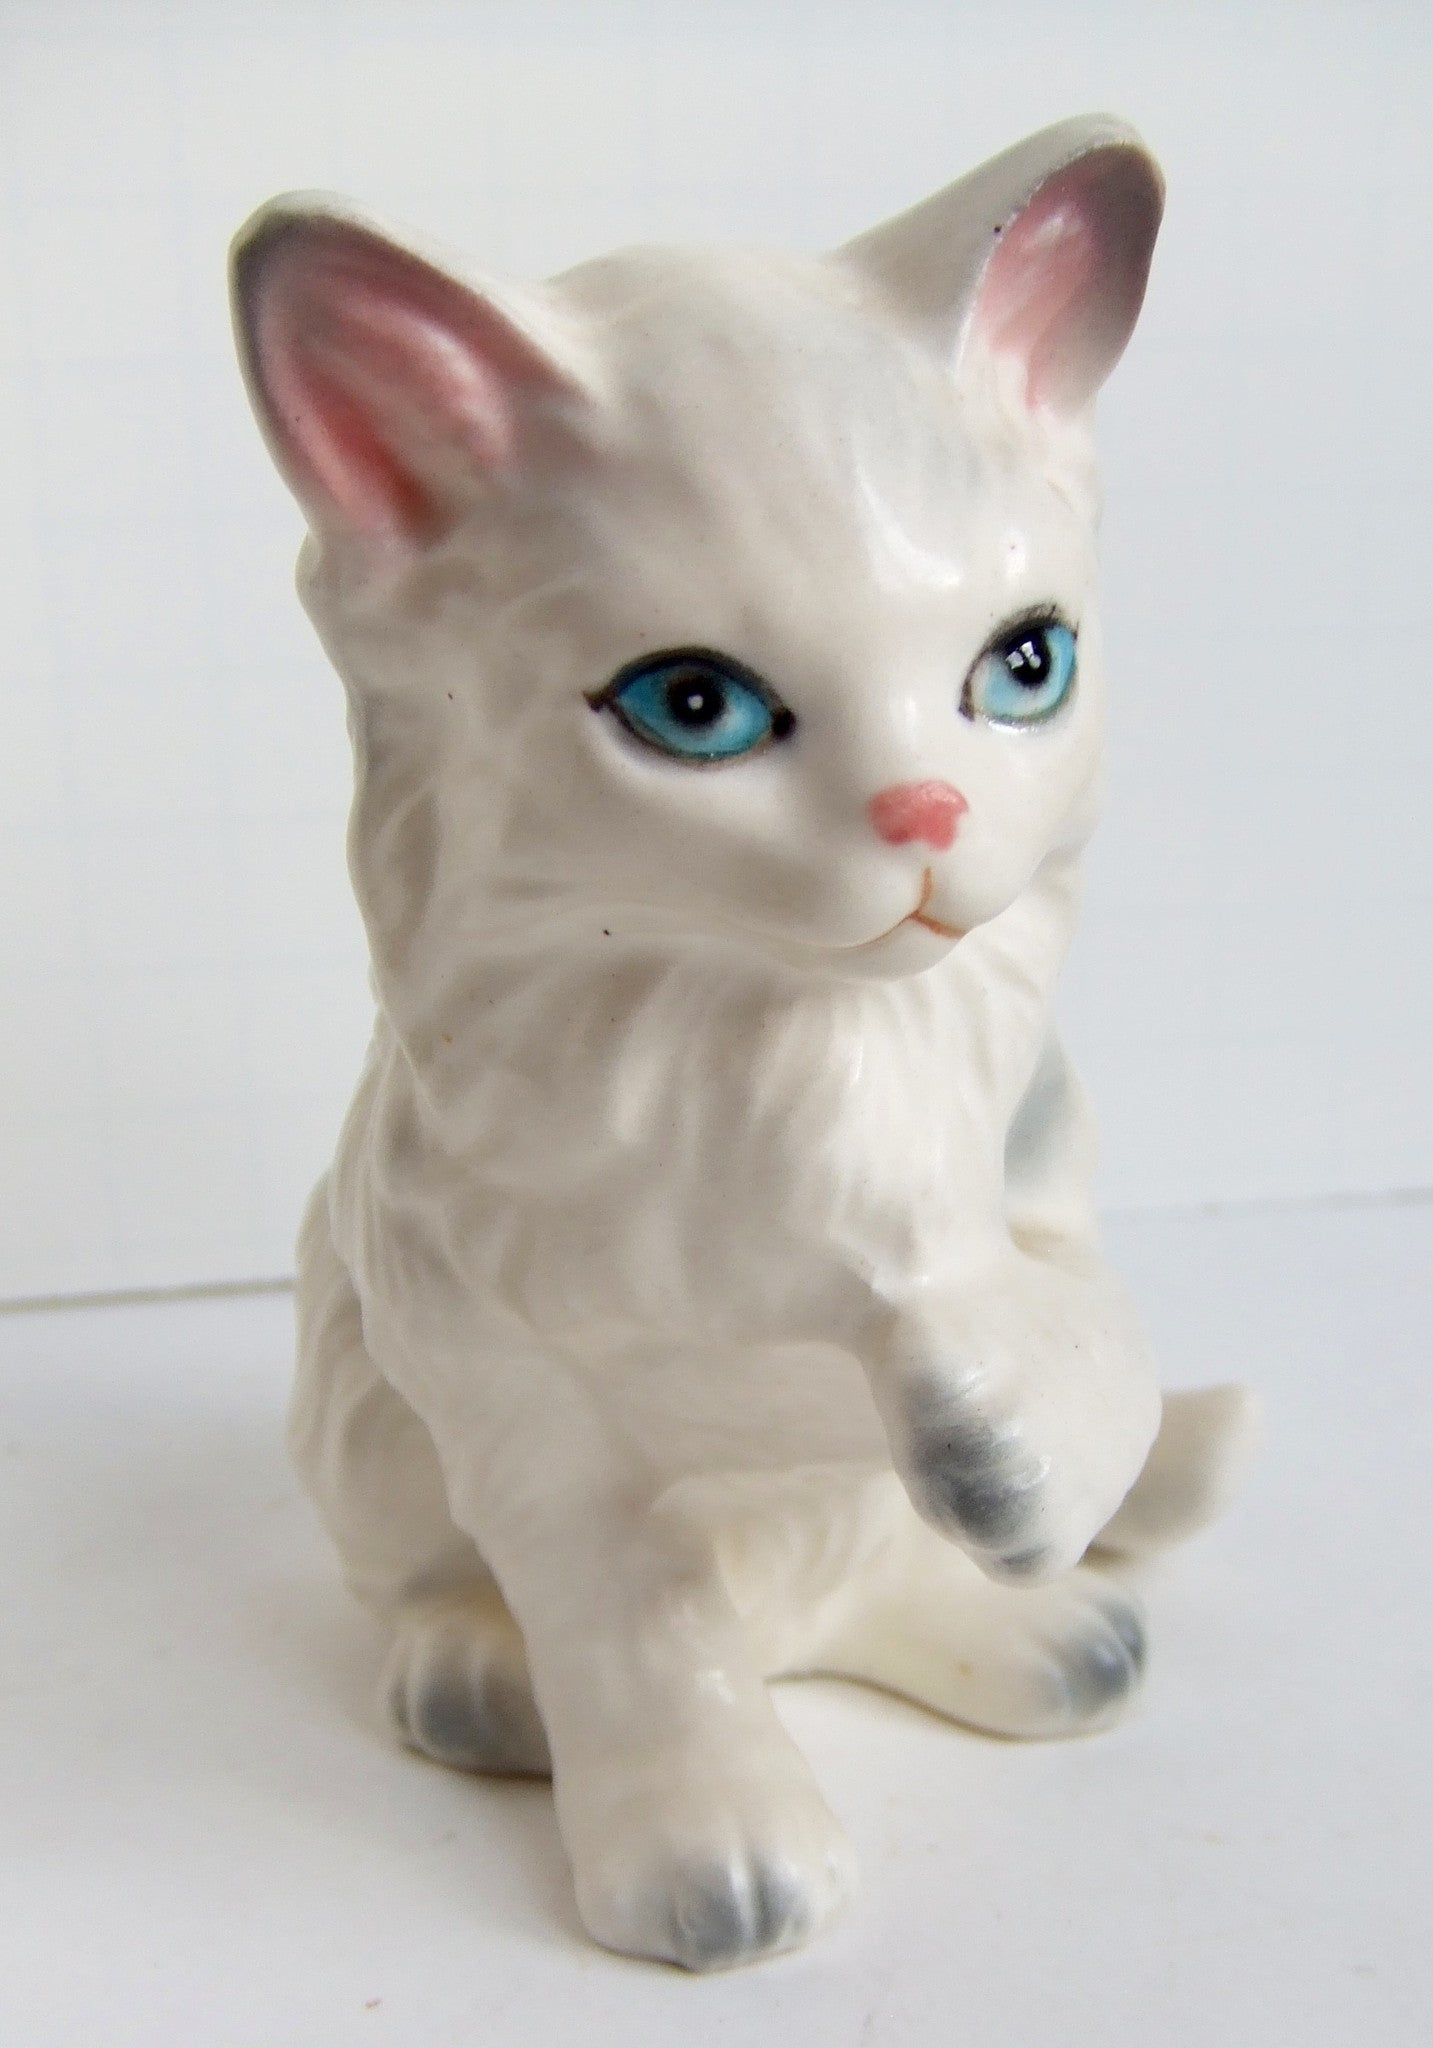 Lefton Persian kitty with bright blue eyes.